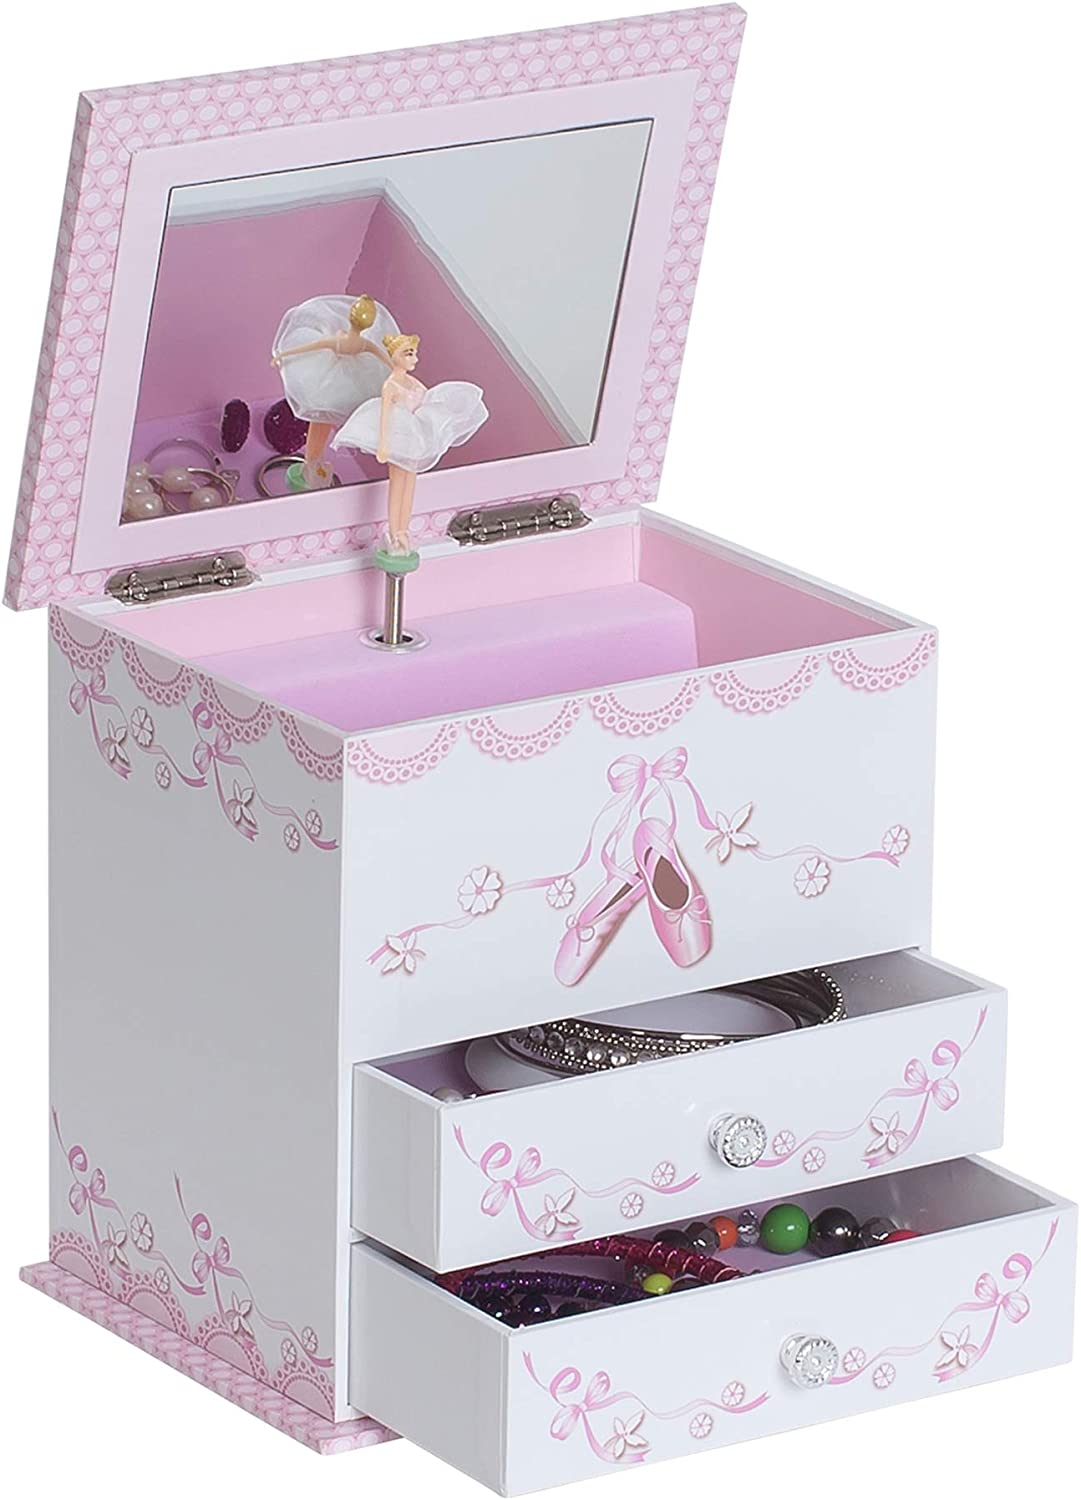 Angel Ballerina Music Jewelry Box for Girls, Necklace and Earring Organizer